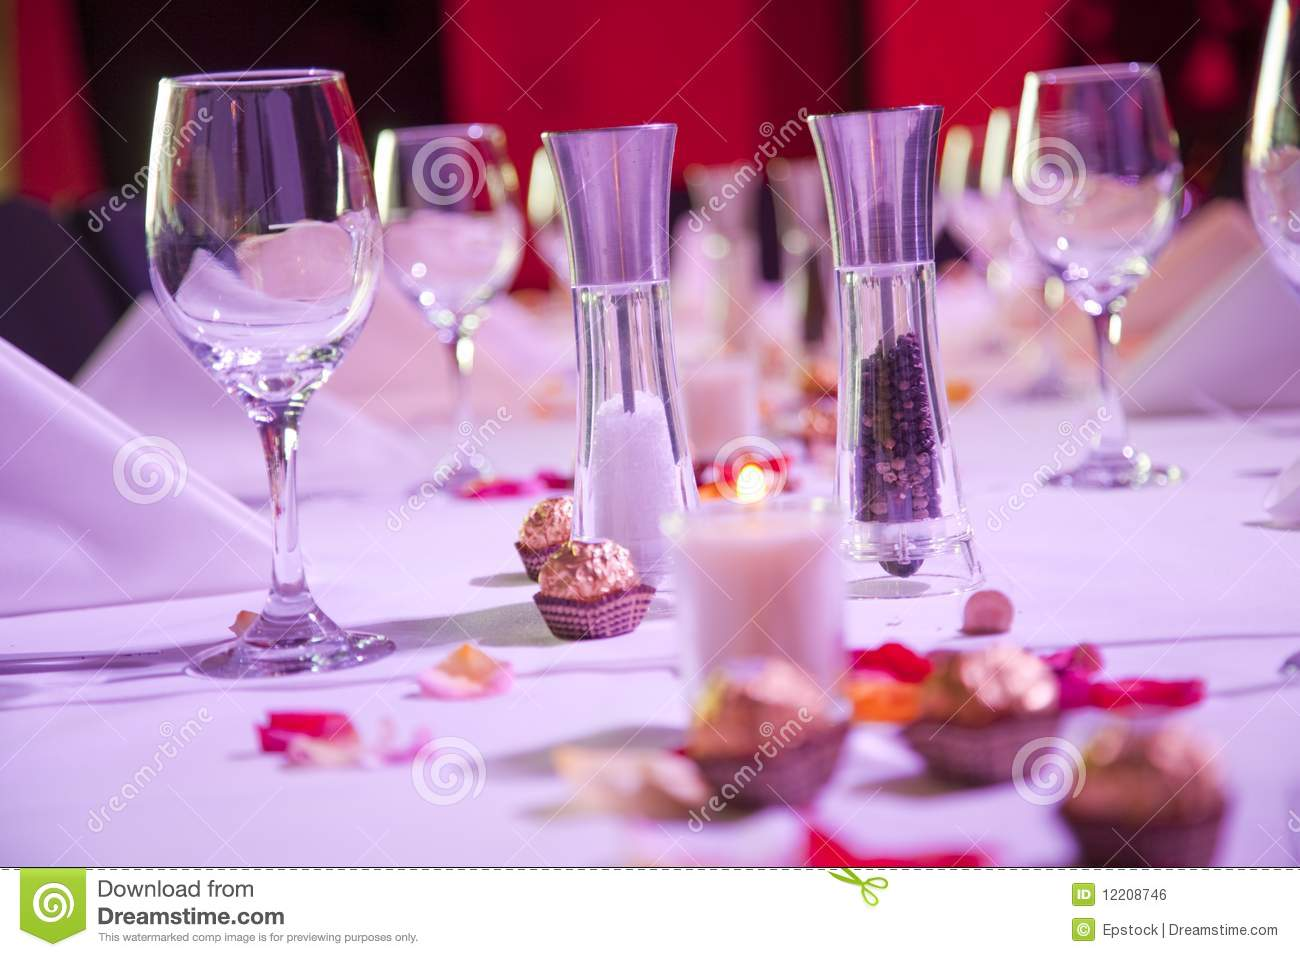 Set restaurant table for special occasion royalty free stock image image 12208746 - Tables restaurant occasion ...